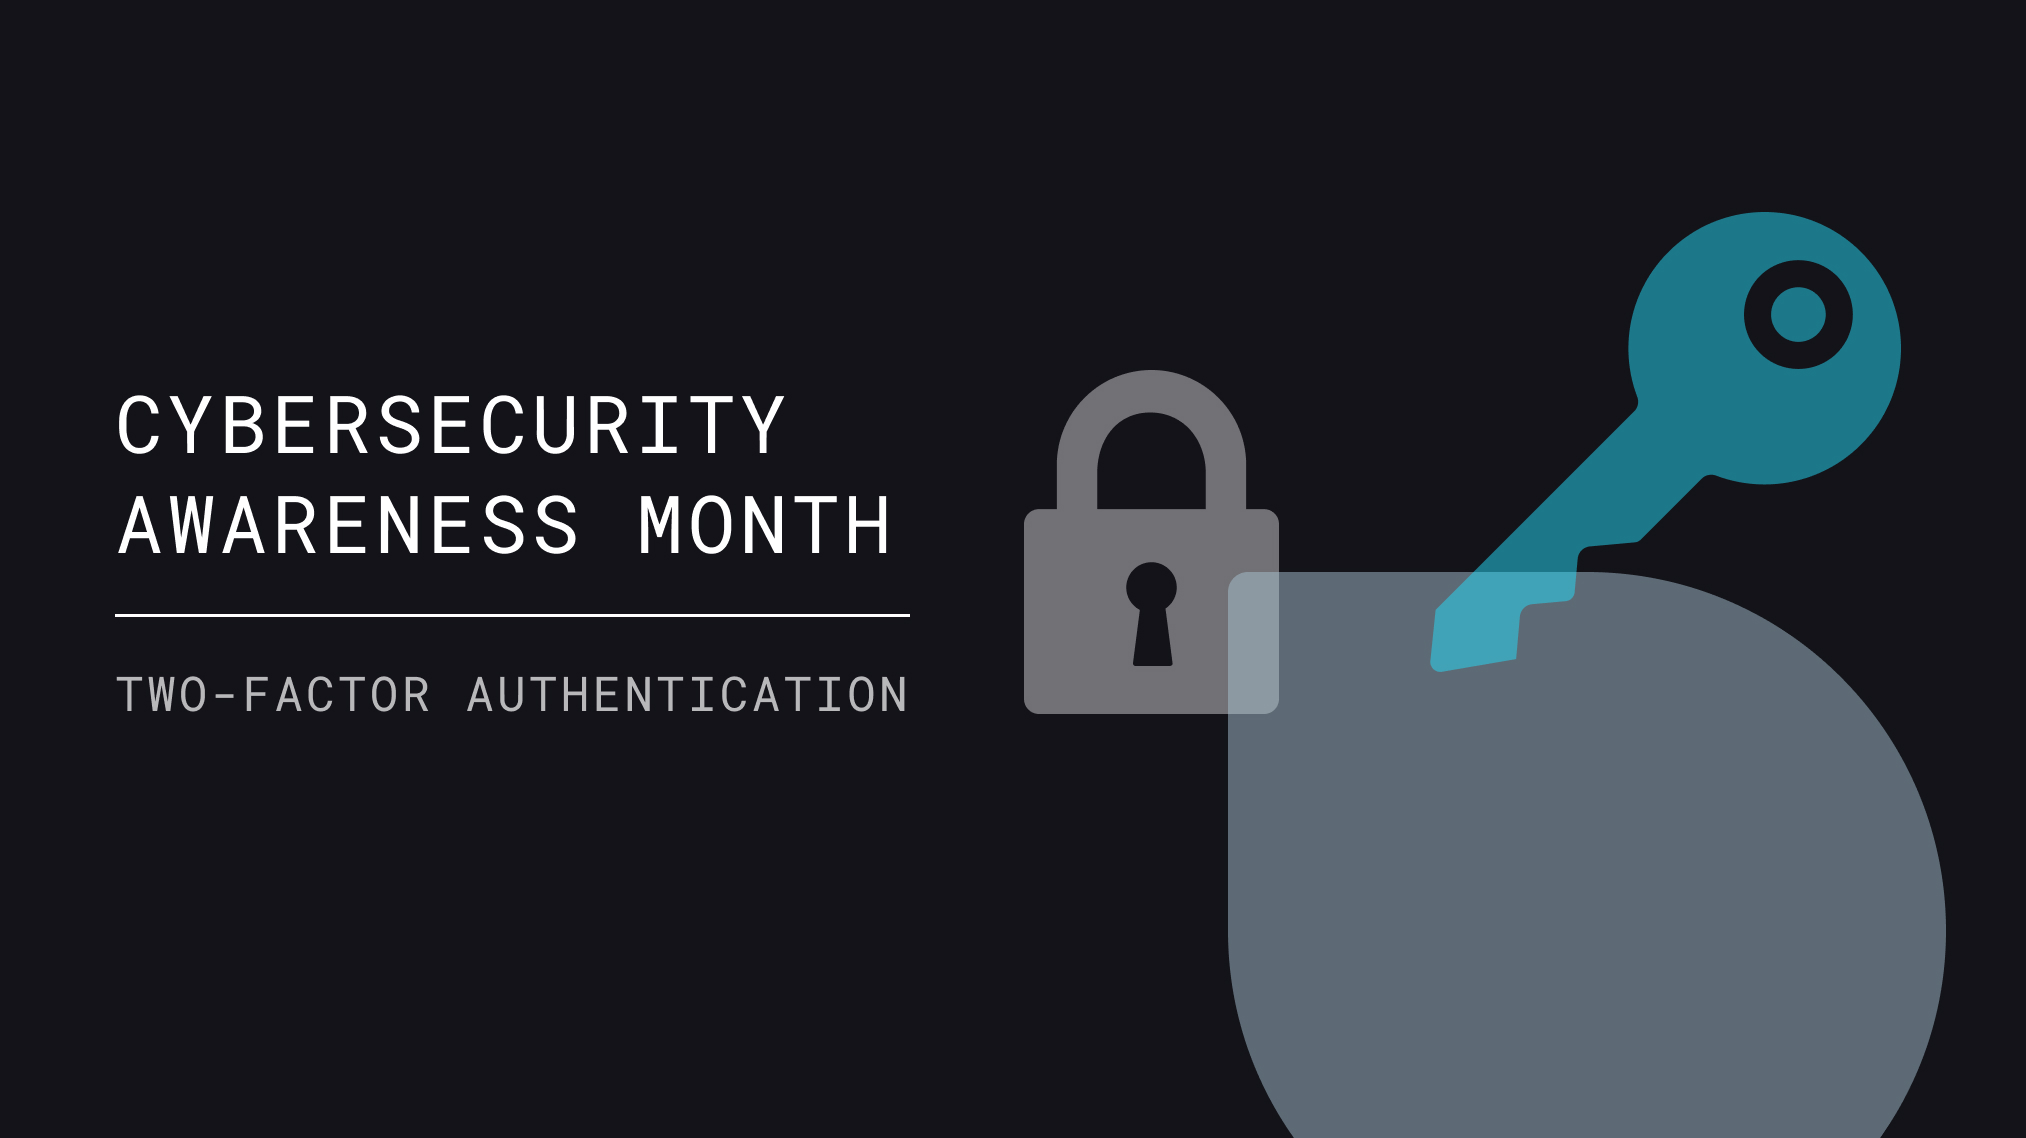 Secure Your Accounts With More Than Just a Password